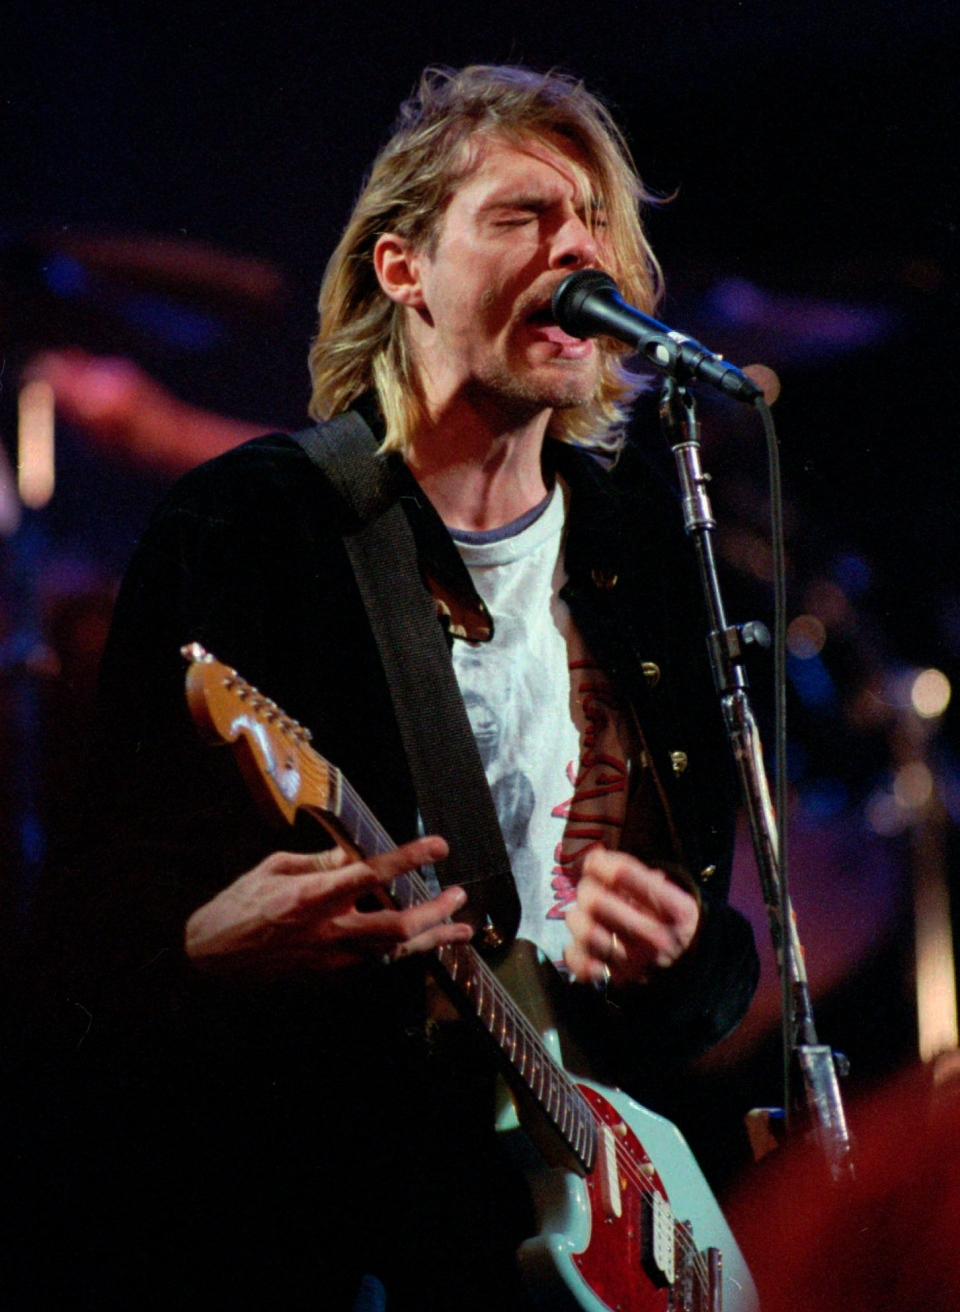 In this Dec. 13, 1993 file photo, Kurt Cobain, lead singer for the band Nirvana, performs during the taping of MTV's Live and Loud Production in Seattle. (AP/Robert Sorbo, File)